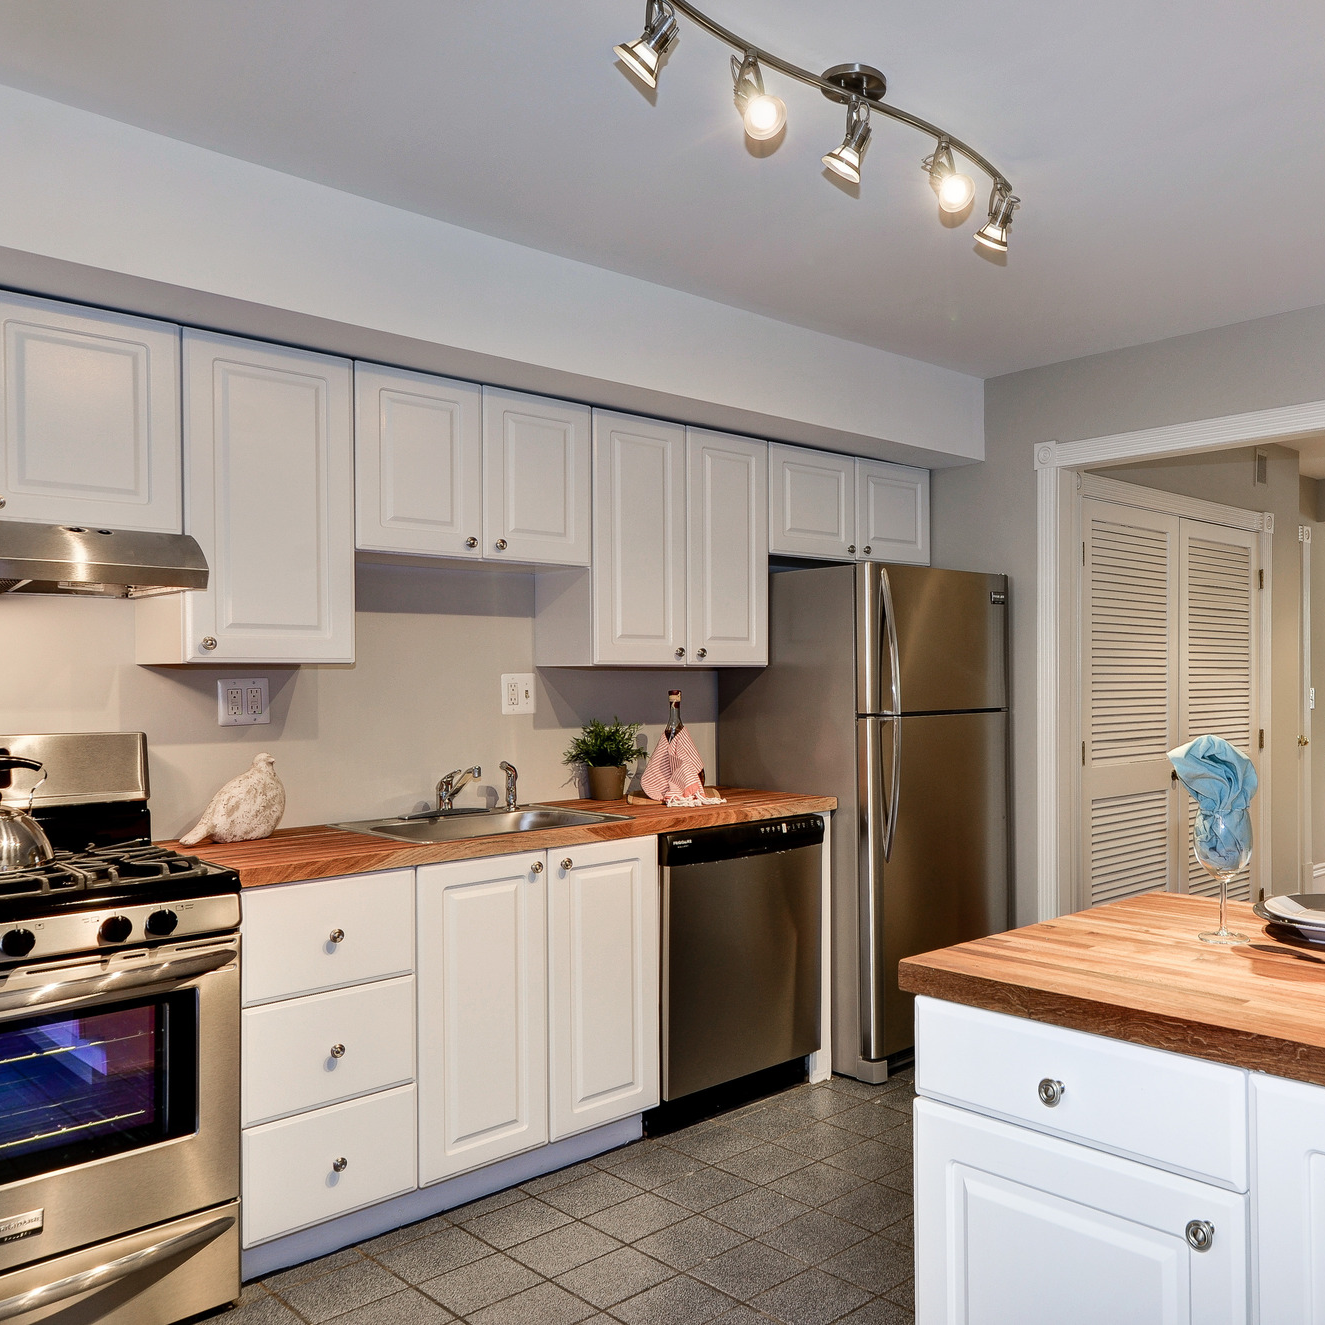 After : keeping the cabinets, updating the counters and appliances brought back warmth to this home's heart